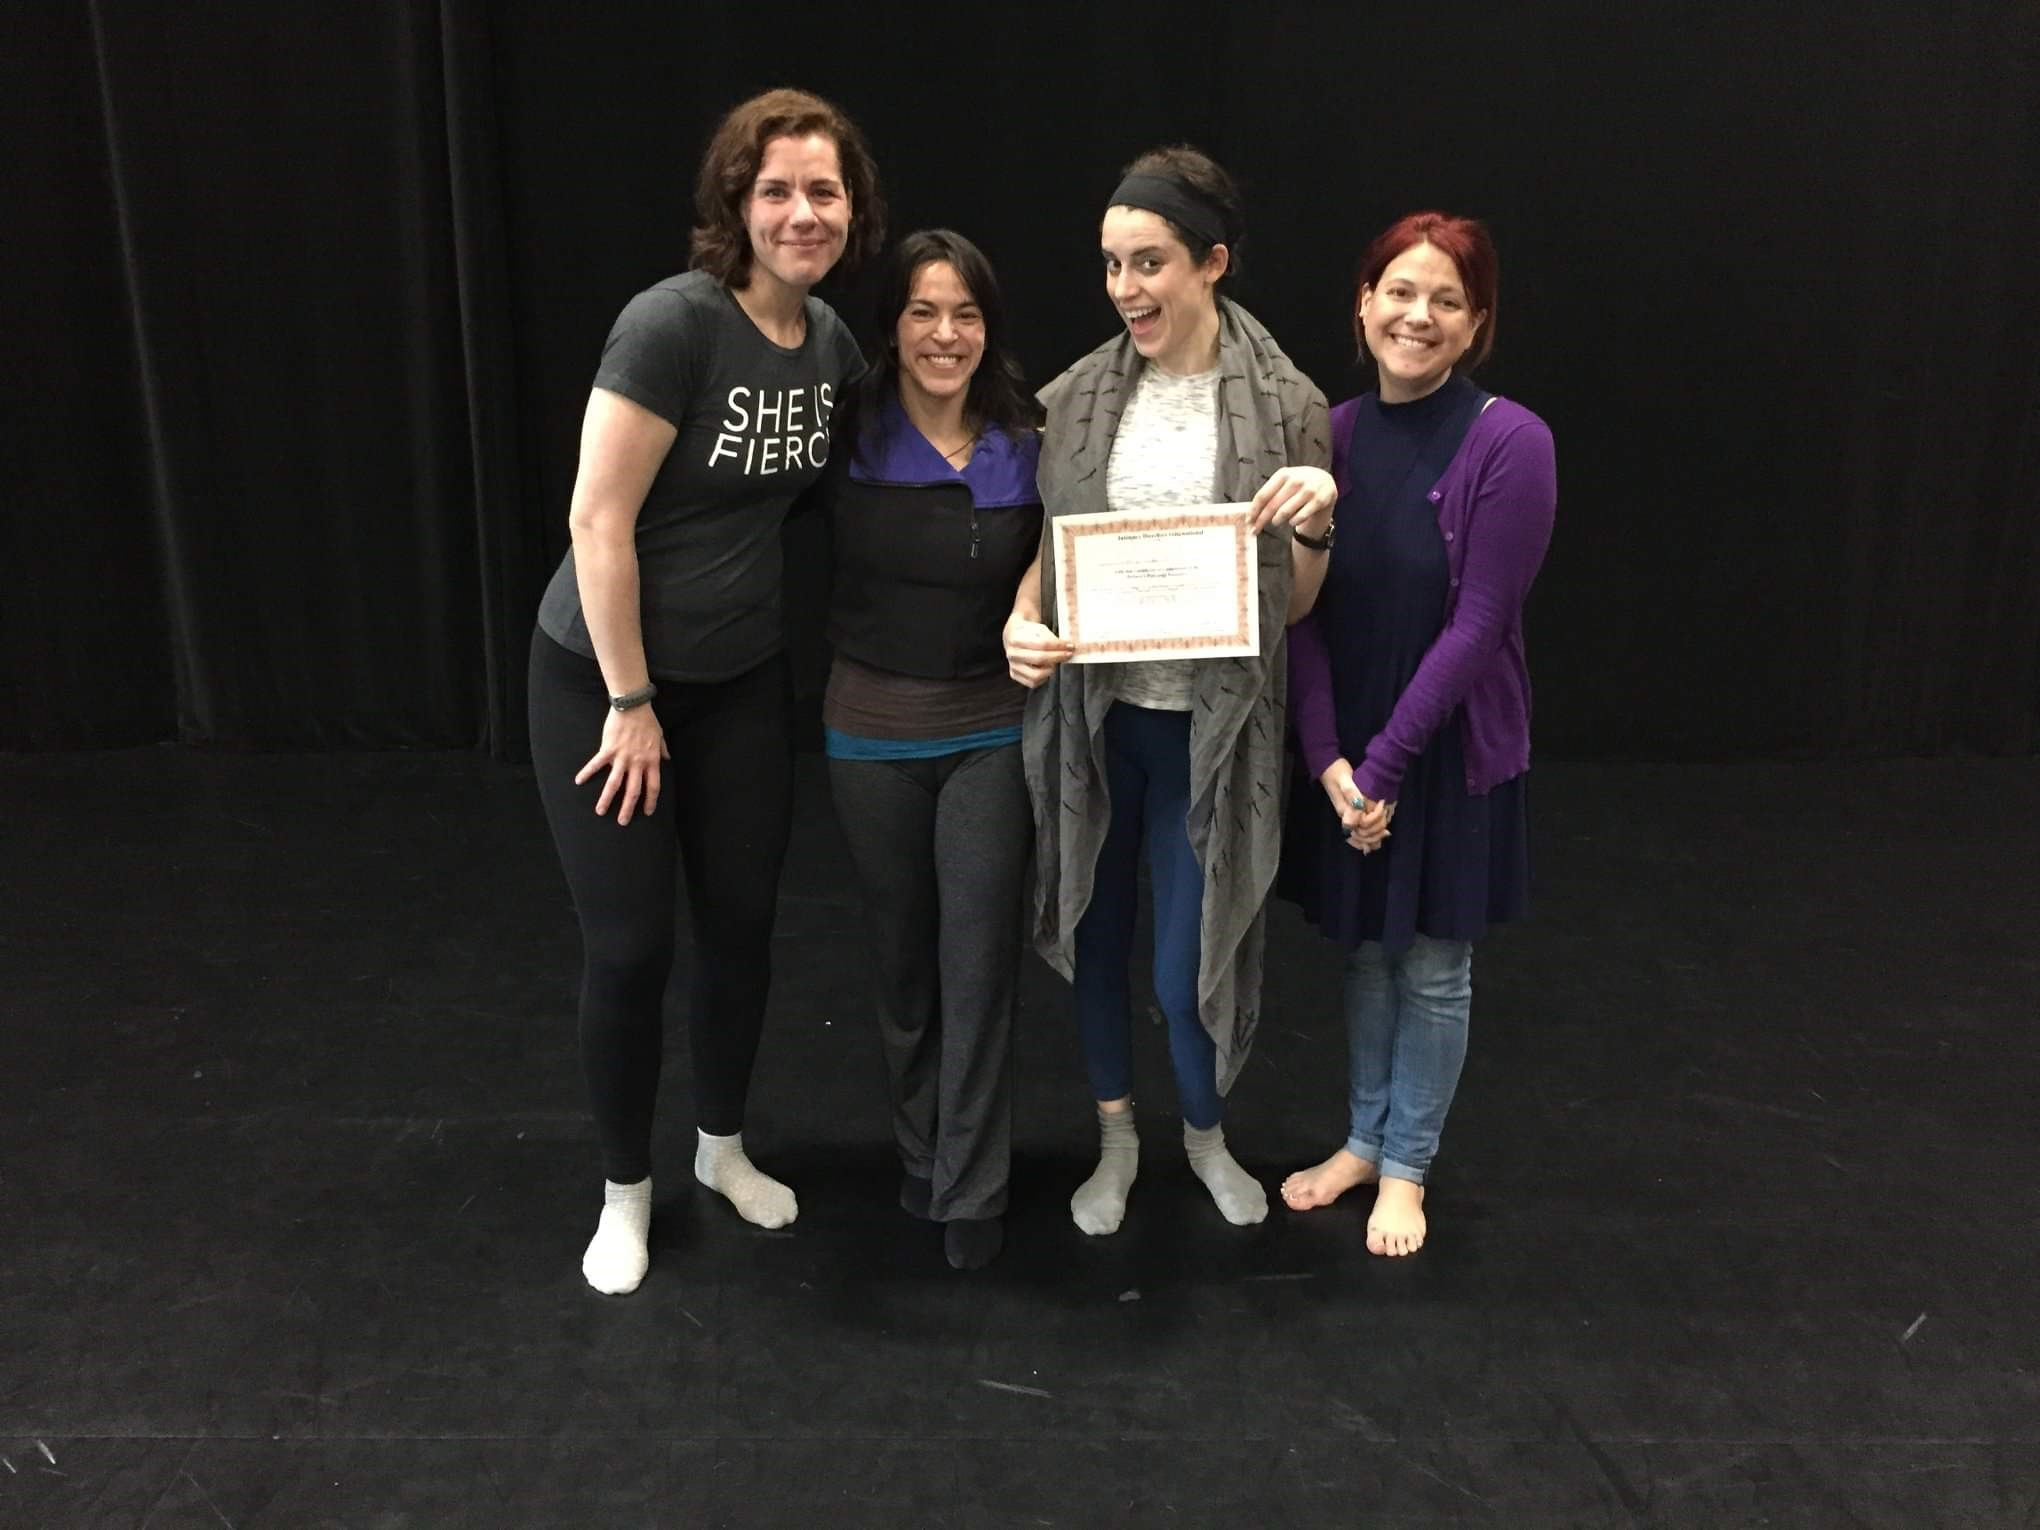 Carly with Master Teachers Claire Warden, Siobhan Richardson, and Tonia Sina.